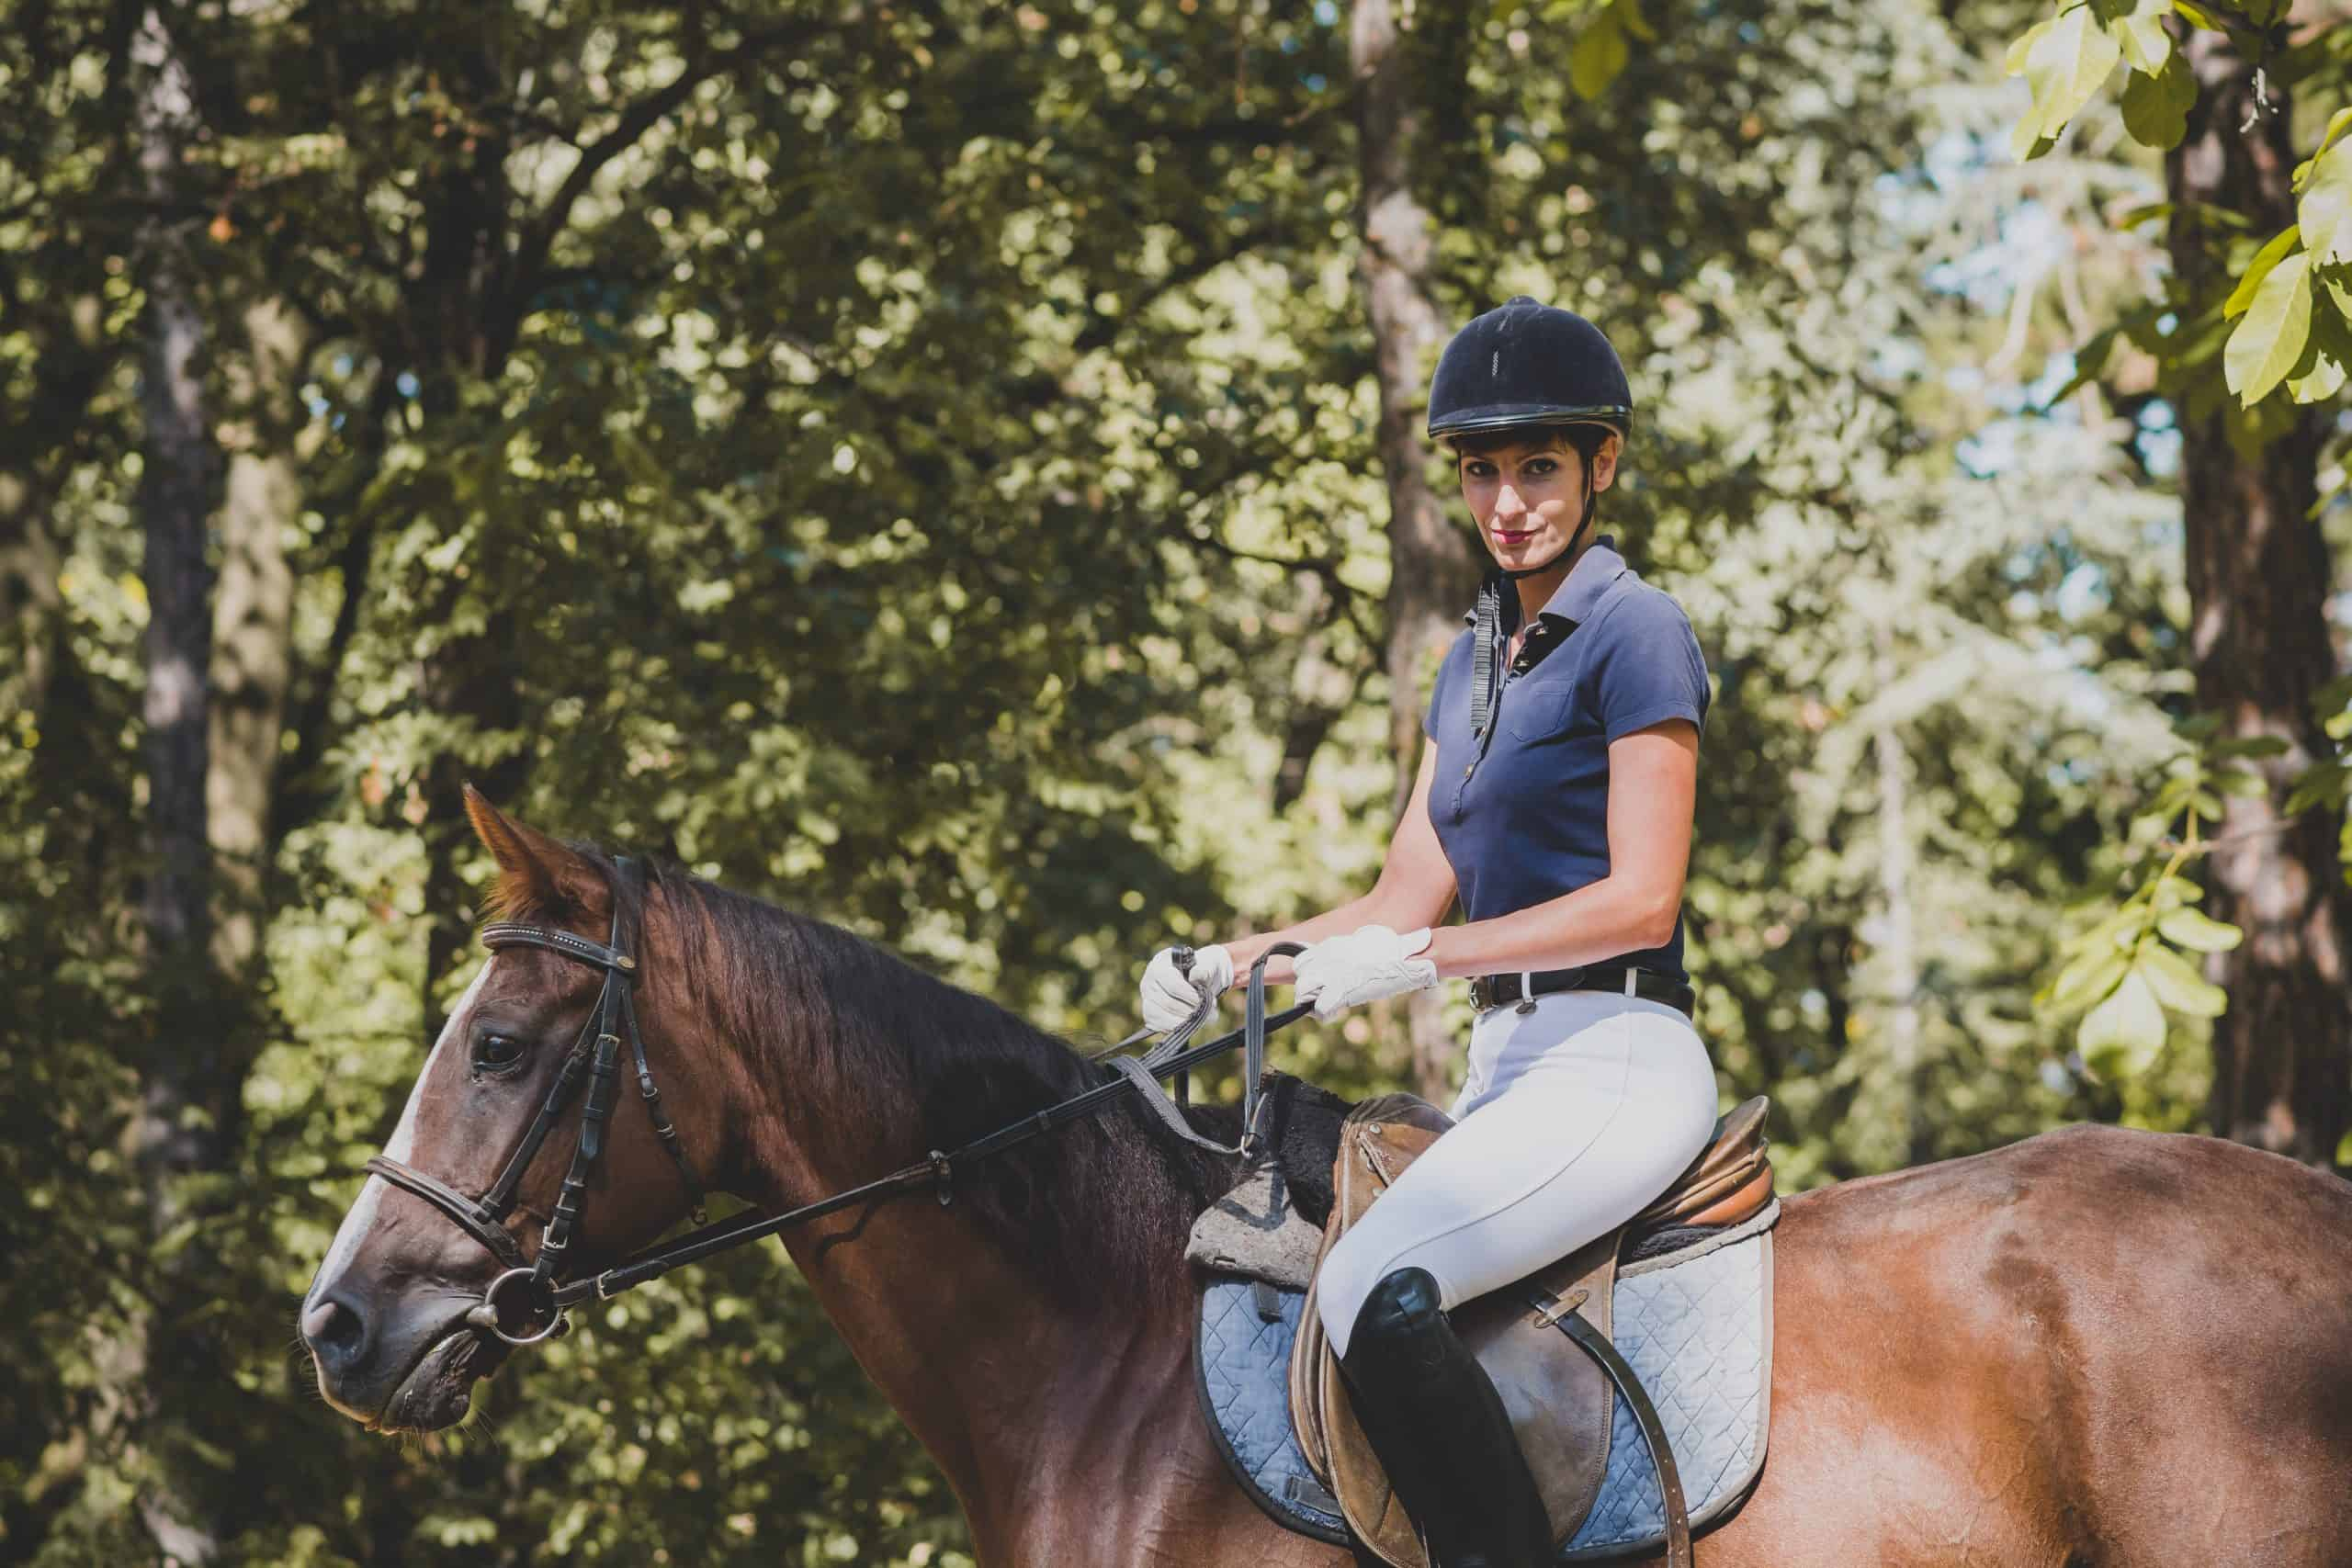 Young smiling woman riding horse in nature